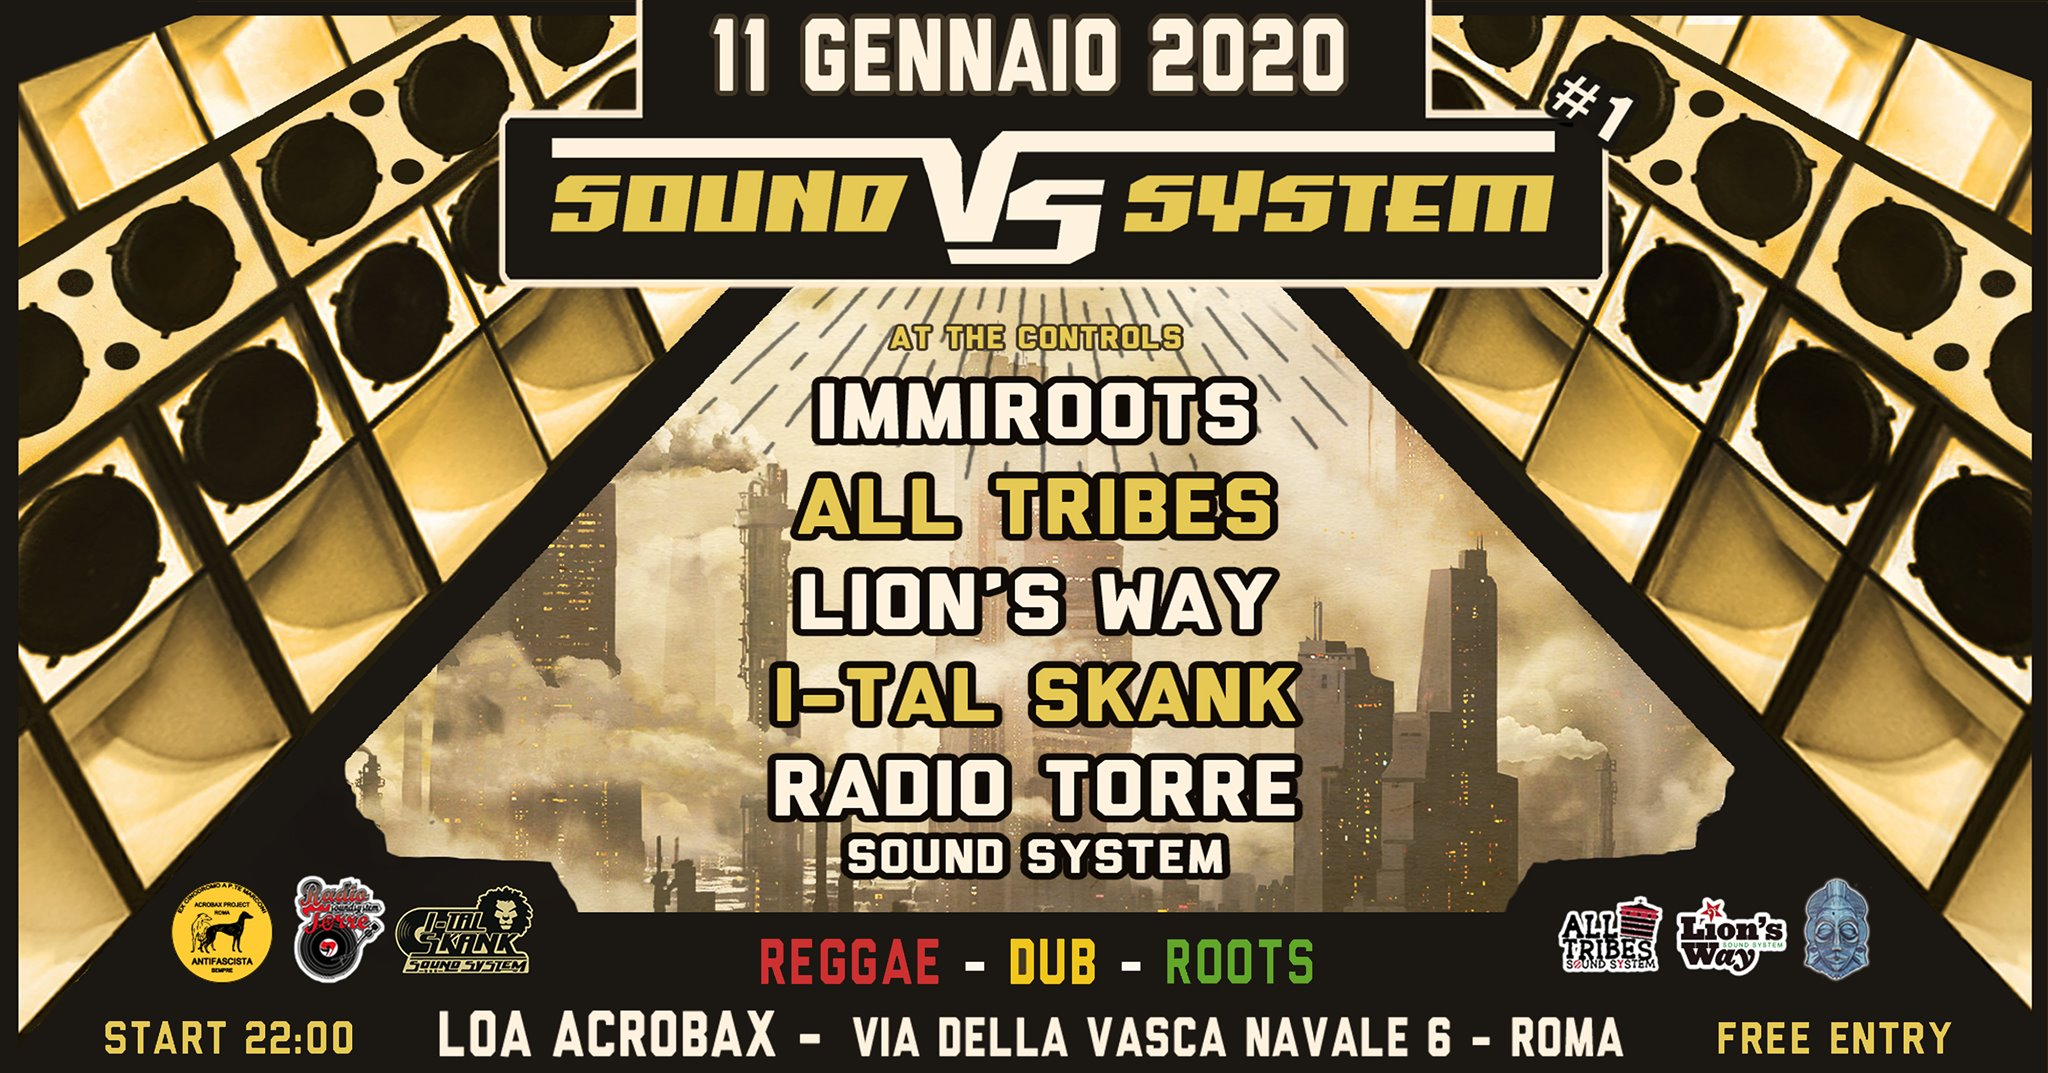 Sabato 11 gennaio/Sound VS System #1 - Soundsystem Dancehall against Babylon!